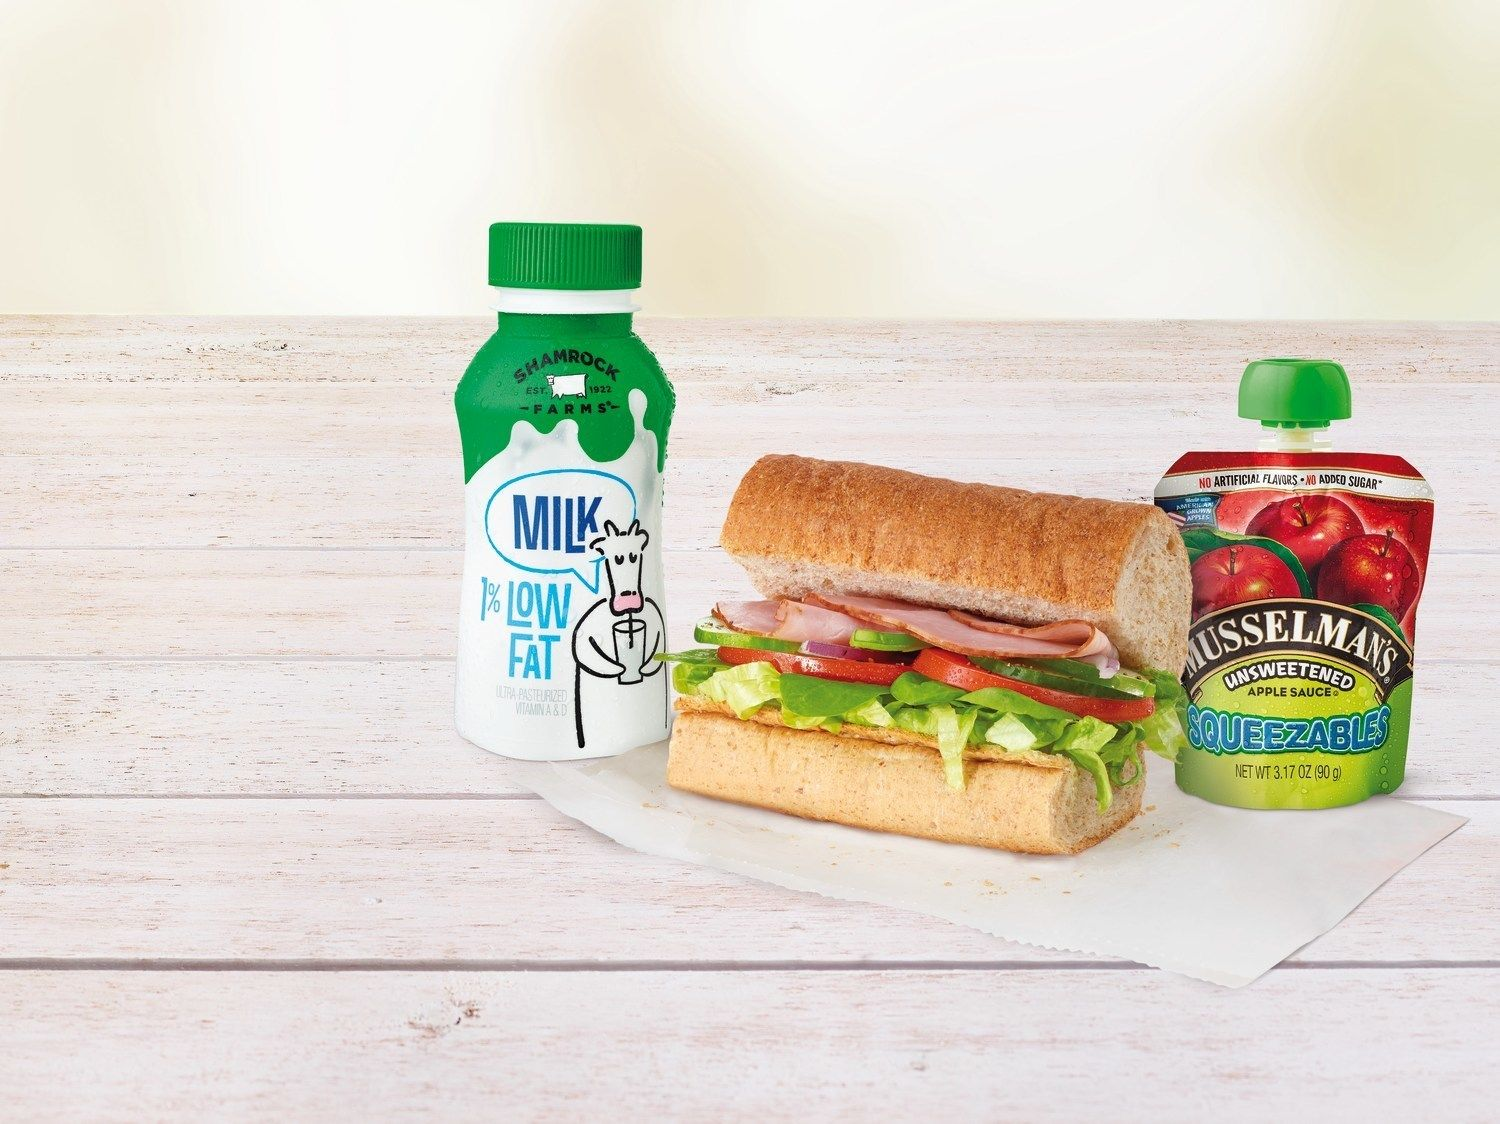 Subway Restaurants Invite Families to Experience a Magical Night Out with an Exclusive Subway Fresh Fit For Kids Meal Offer